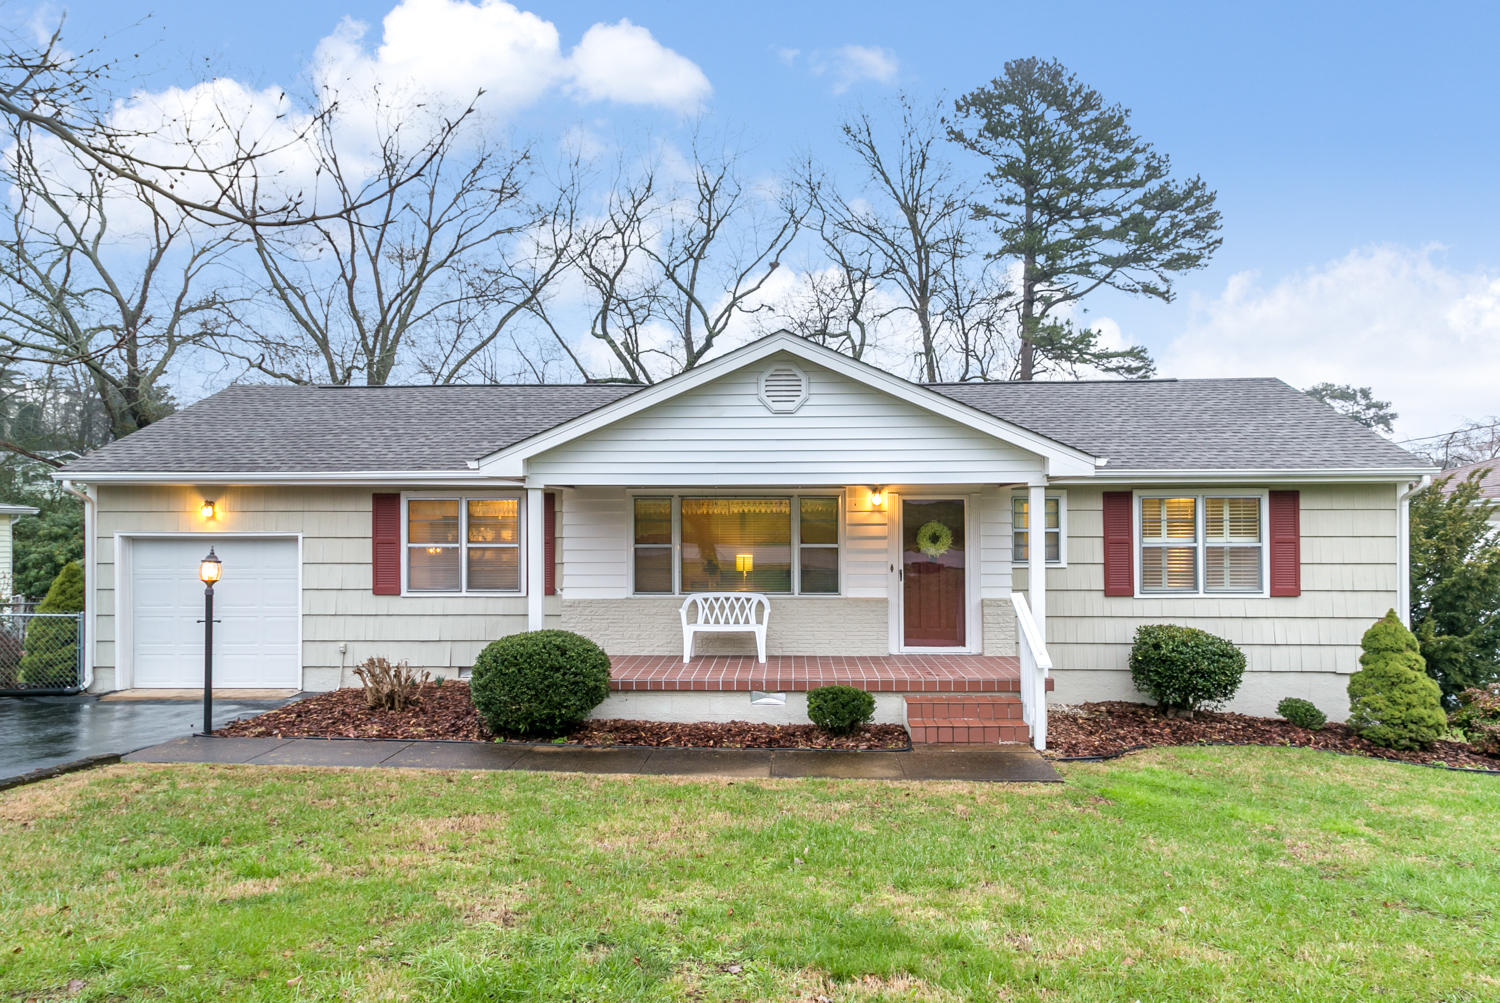 3661 Larry Ln, Chattanooga, TN 36412